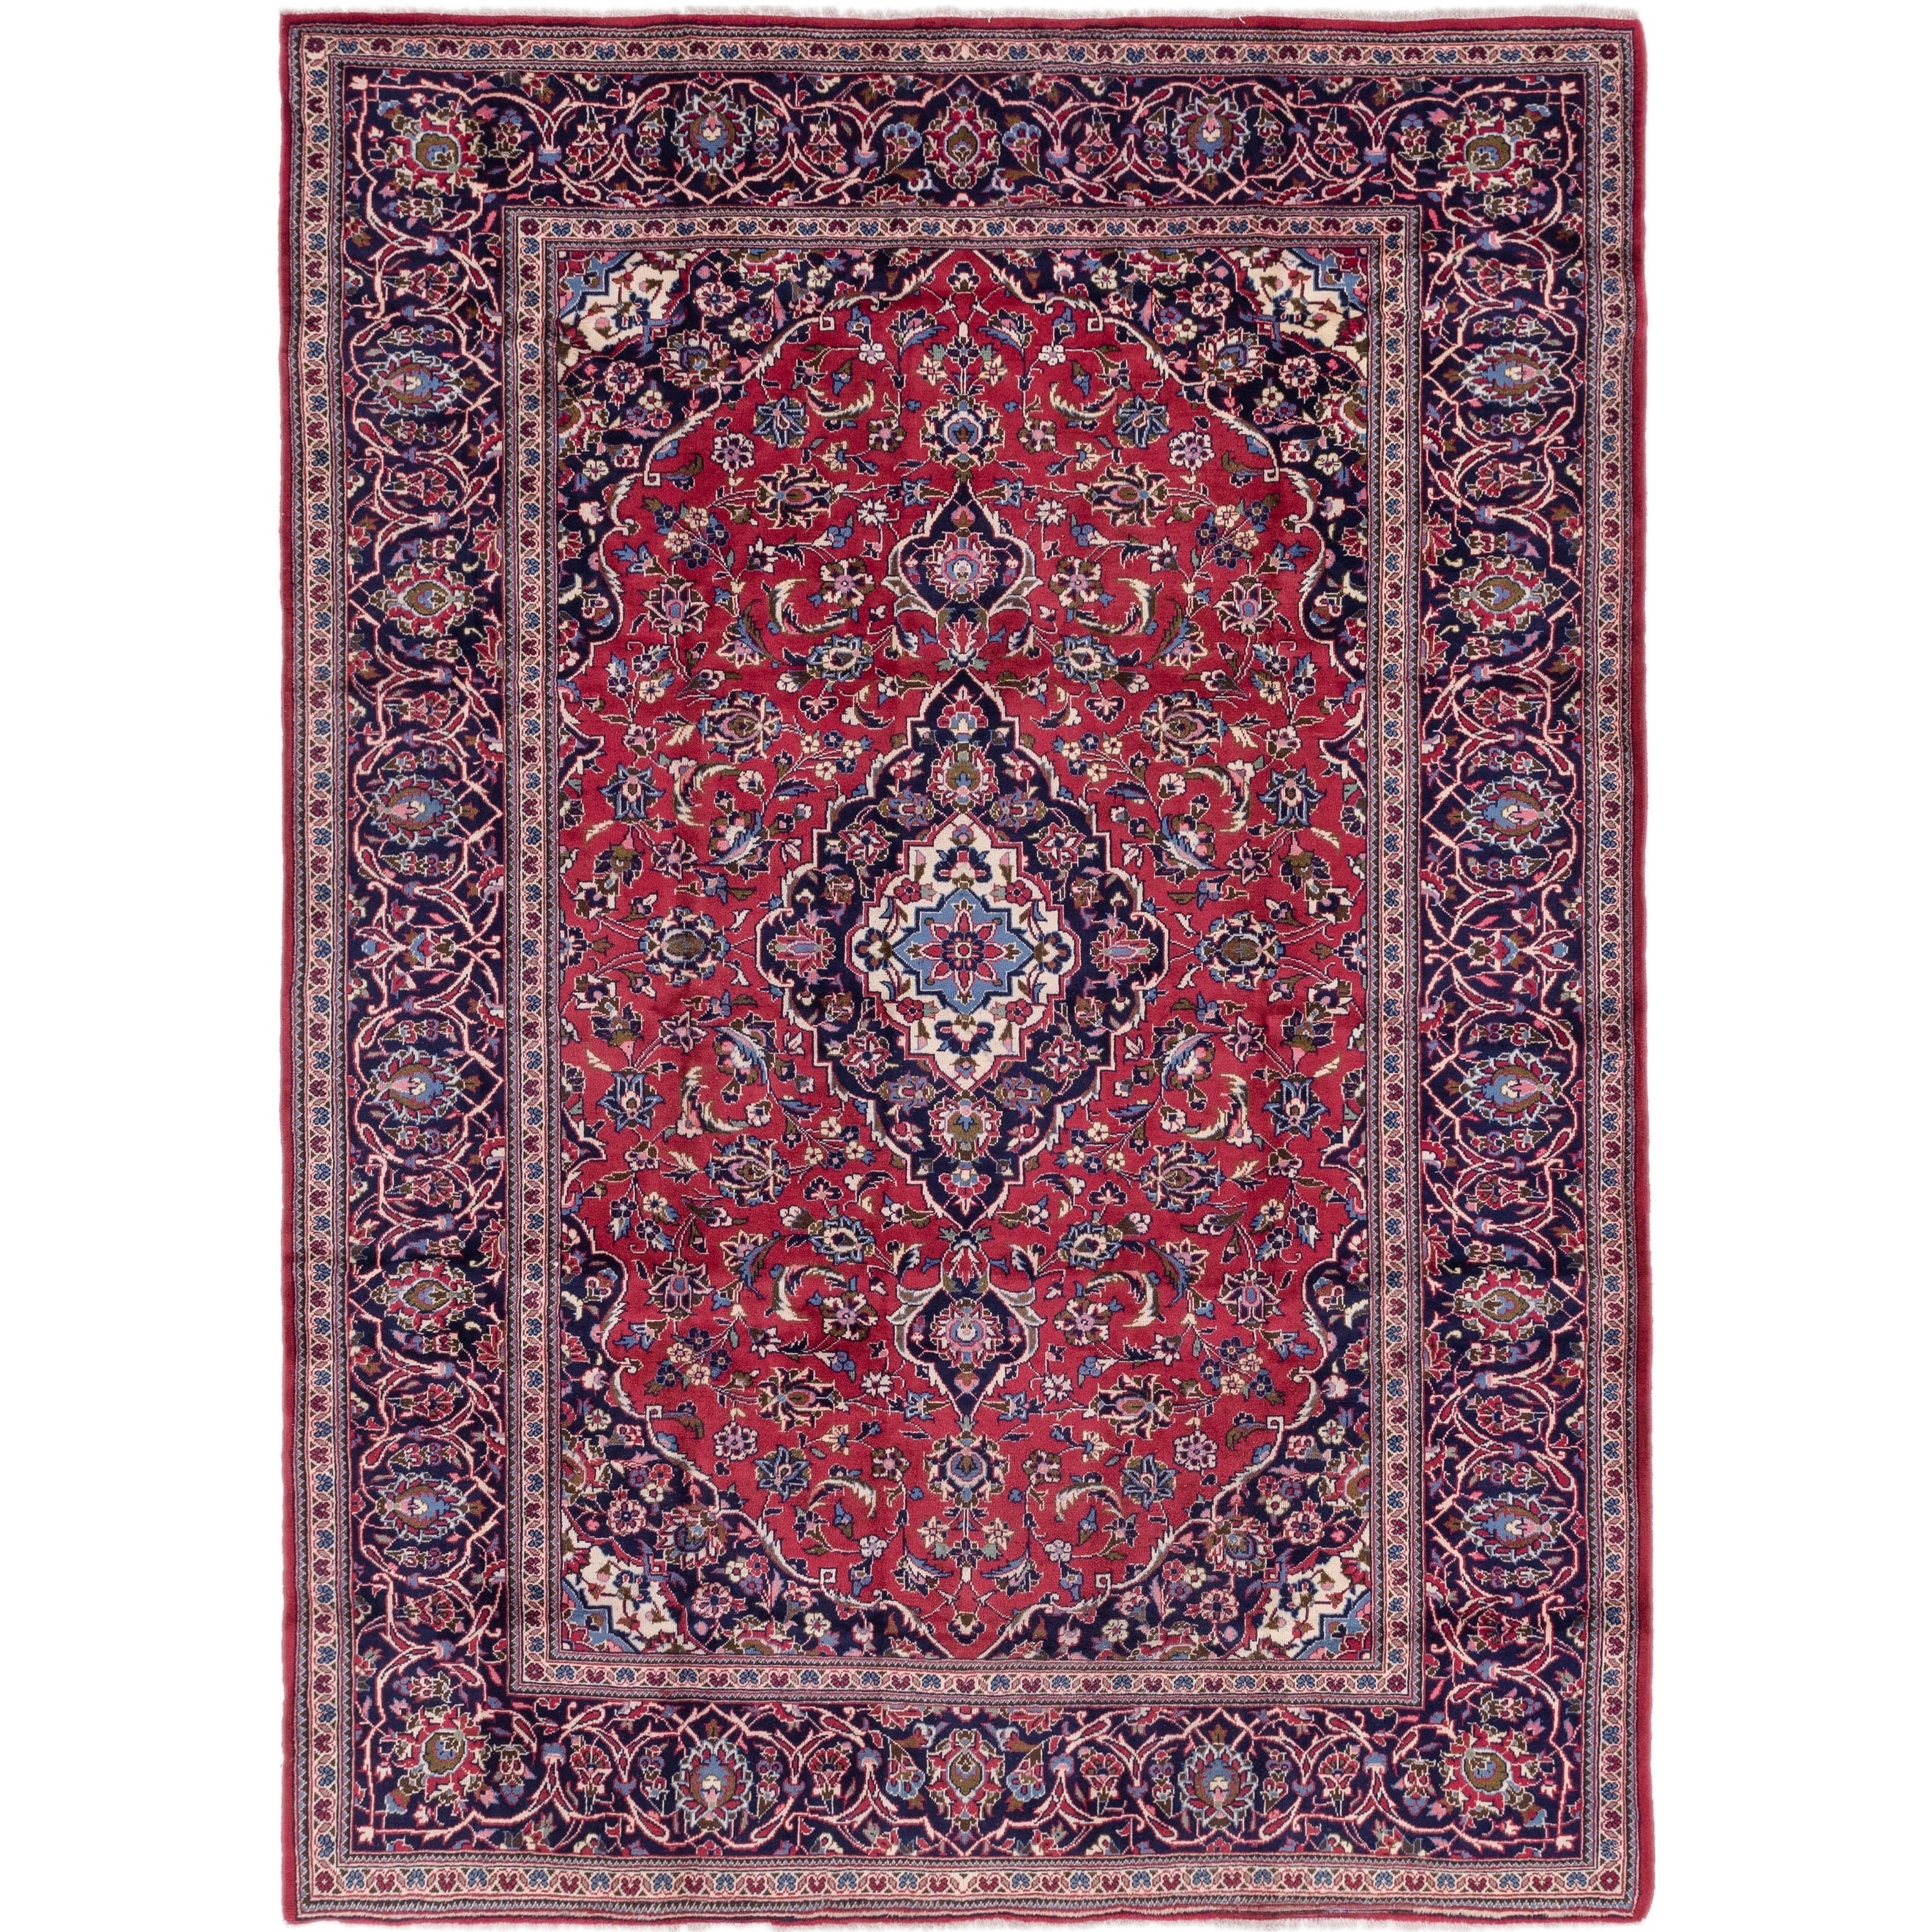 Hand Knotted Kashan Wool Area Rug - 8 x 11 2 (Red - 8 x 11 2)